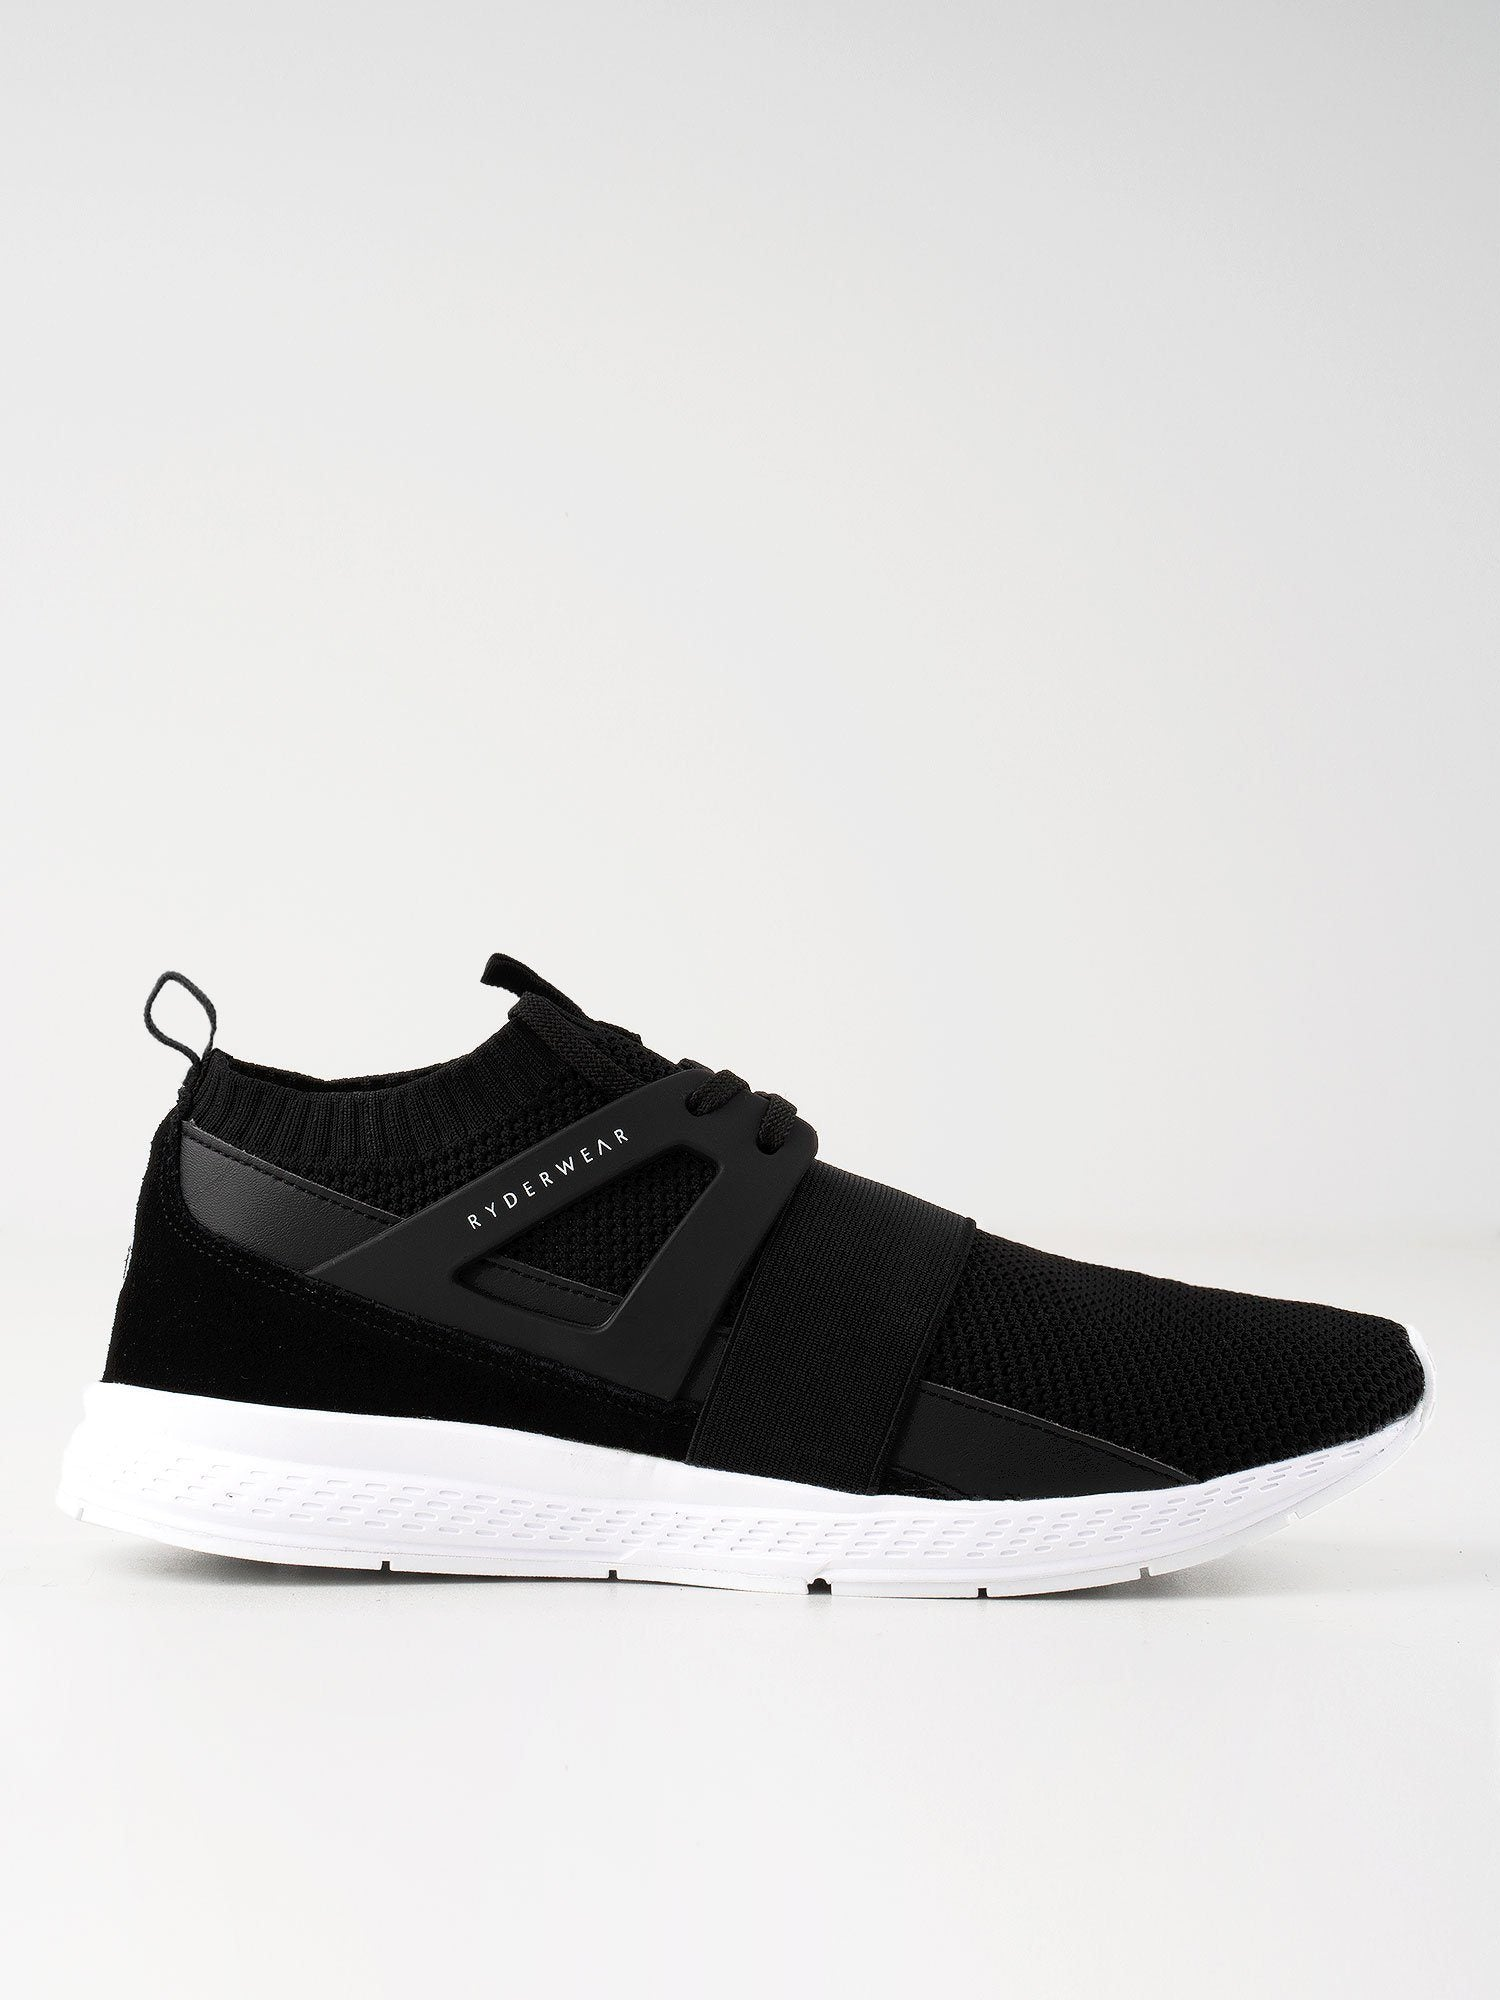 Ryderwear F-LO Shoe – Black